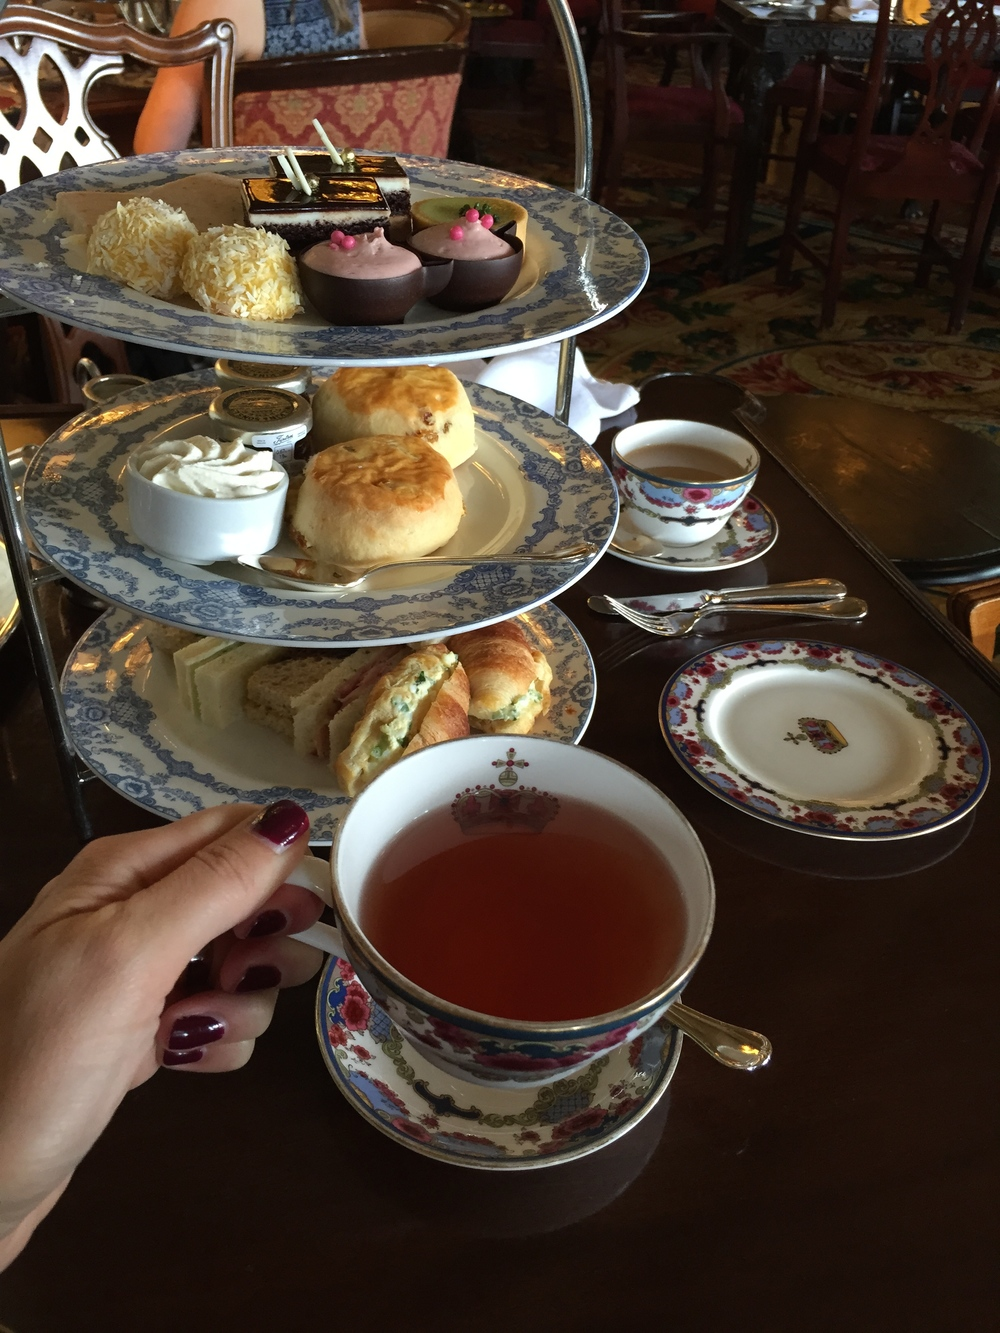 Afternoon Tea at The Fairmont Empress